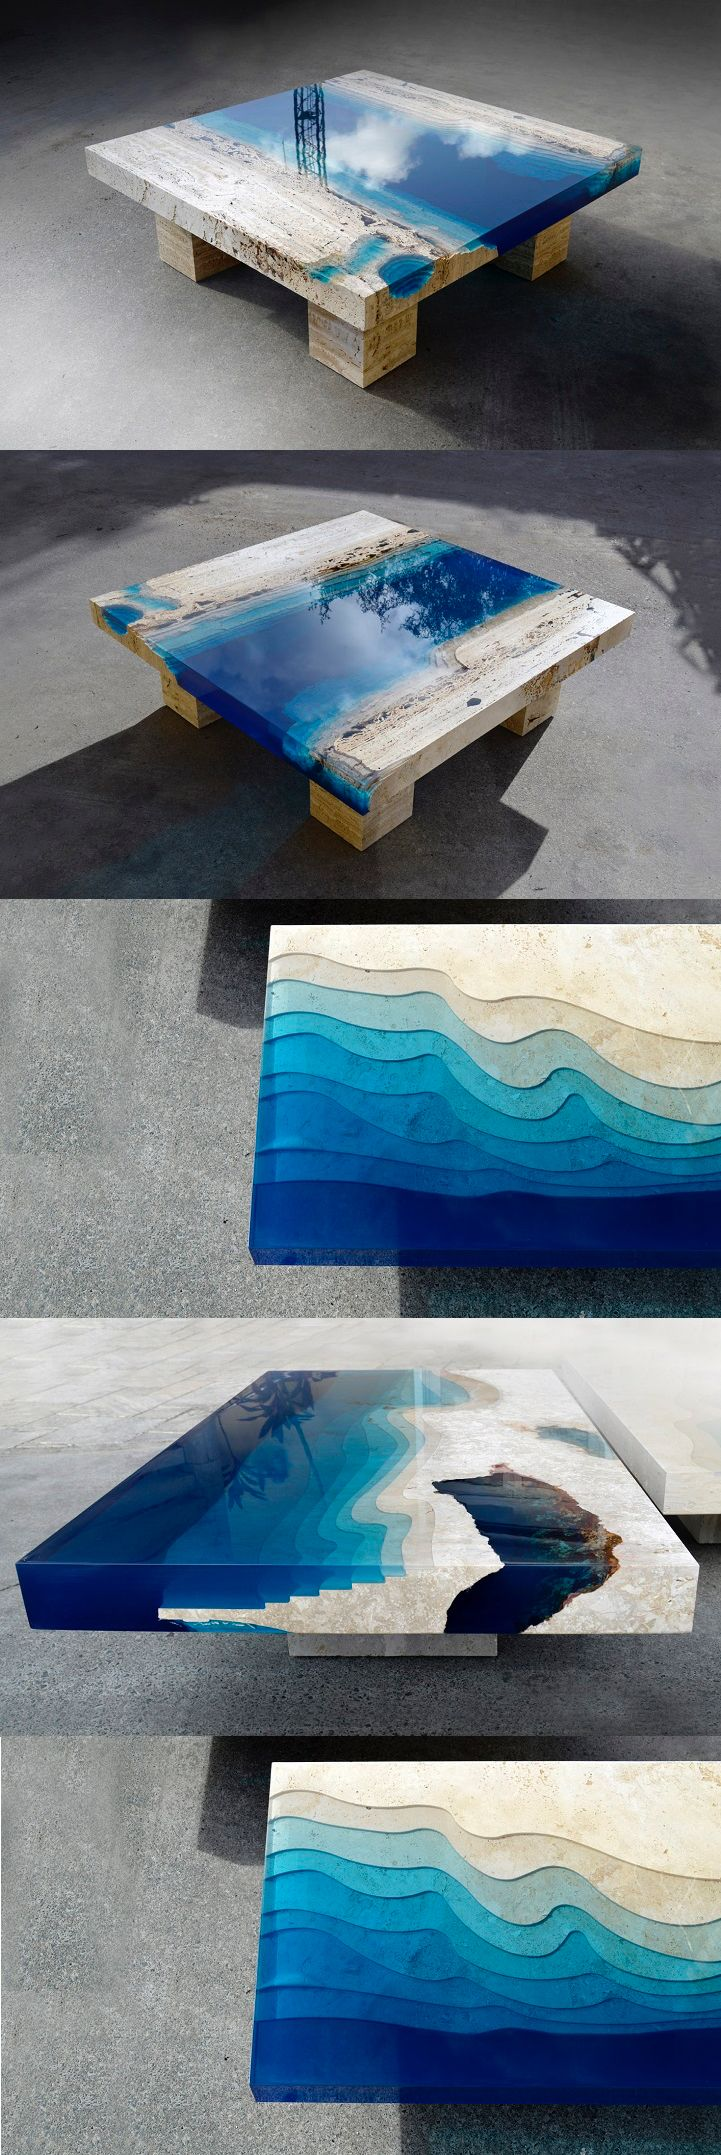 New Marble And Resin Coffee Table Captures The Soothing Beauty Of